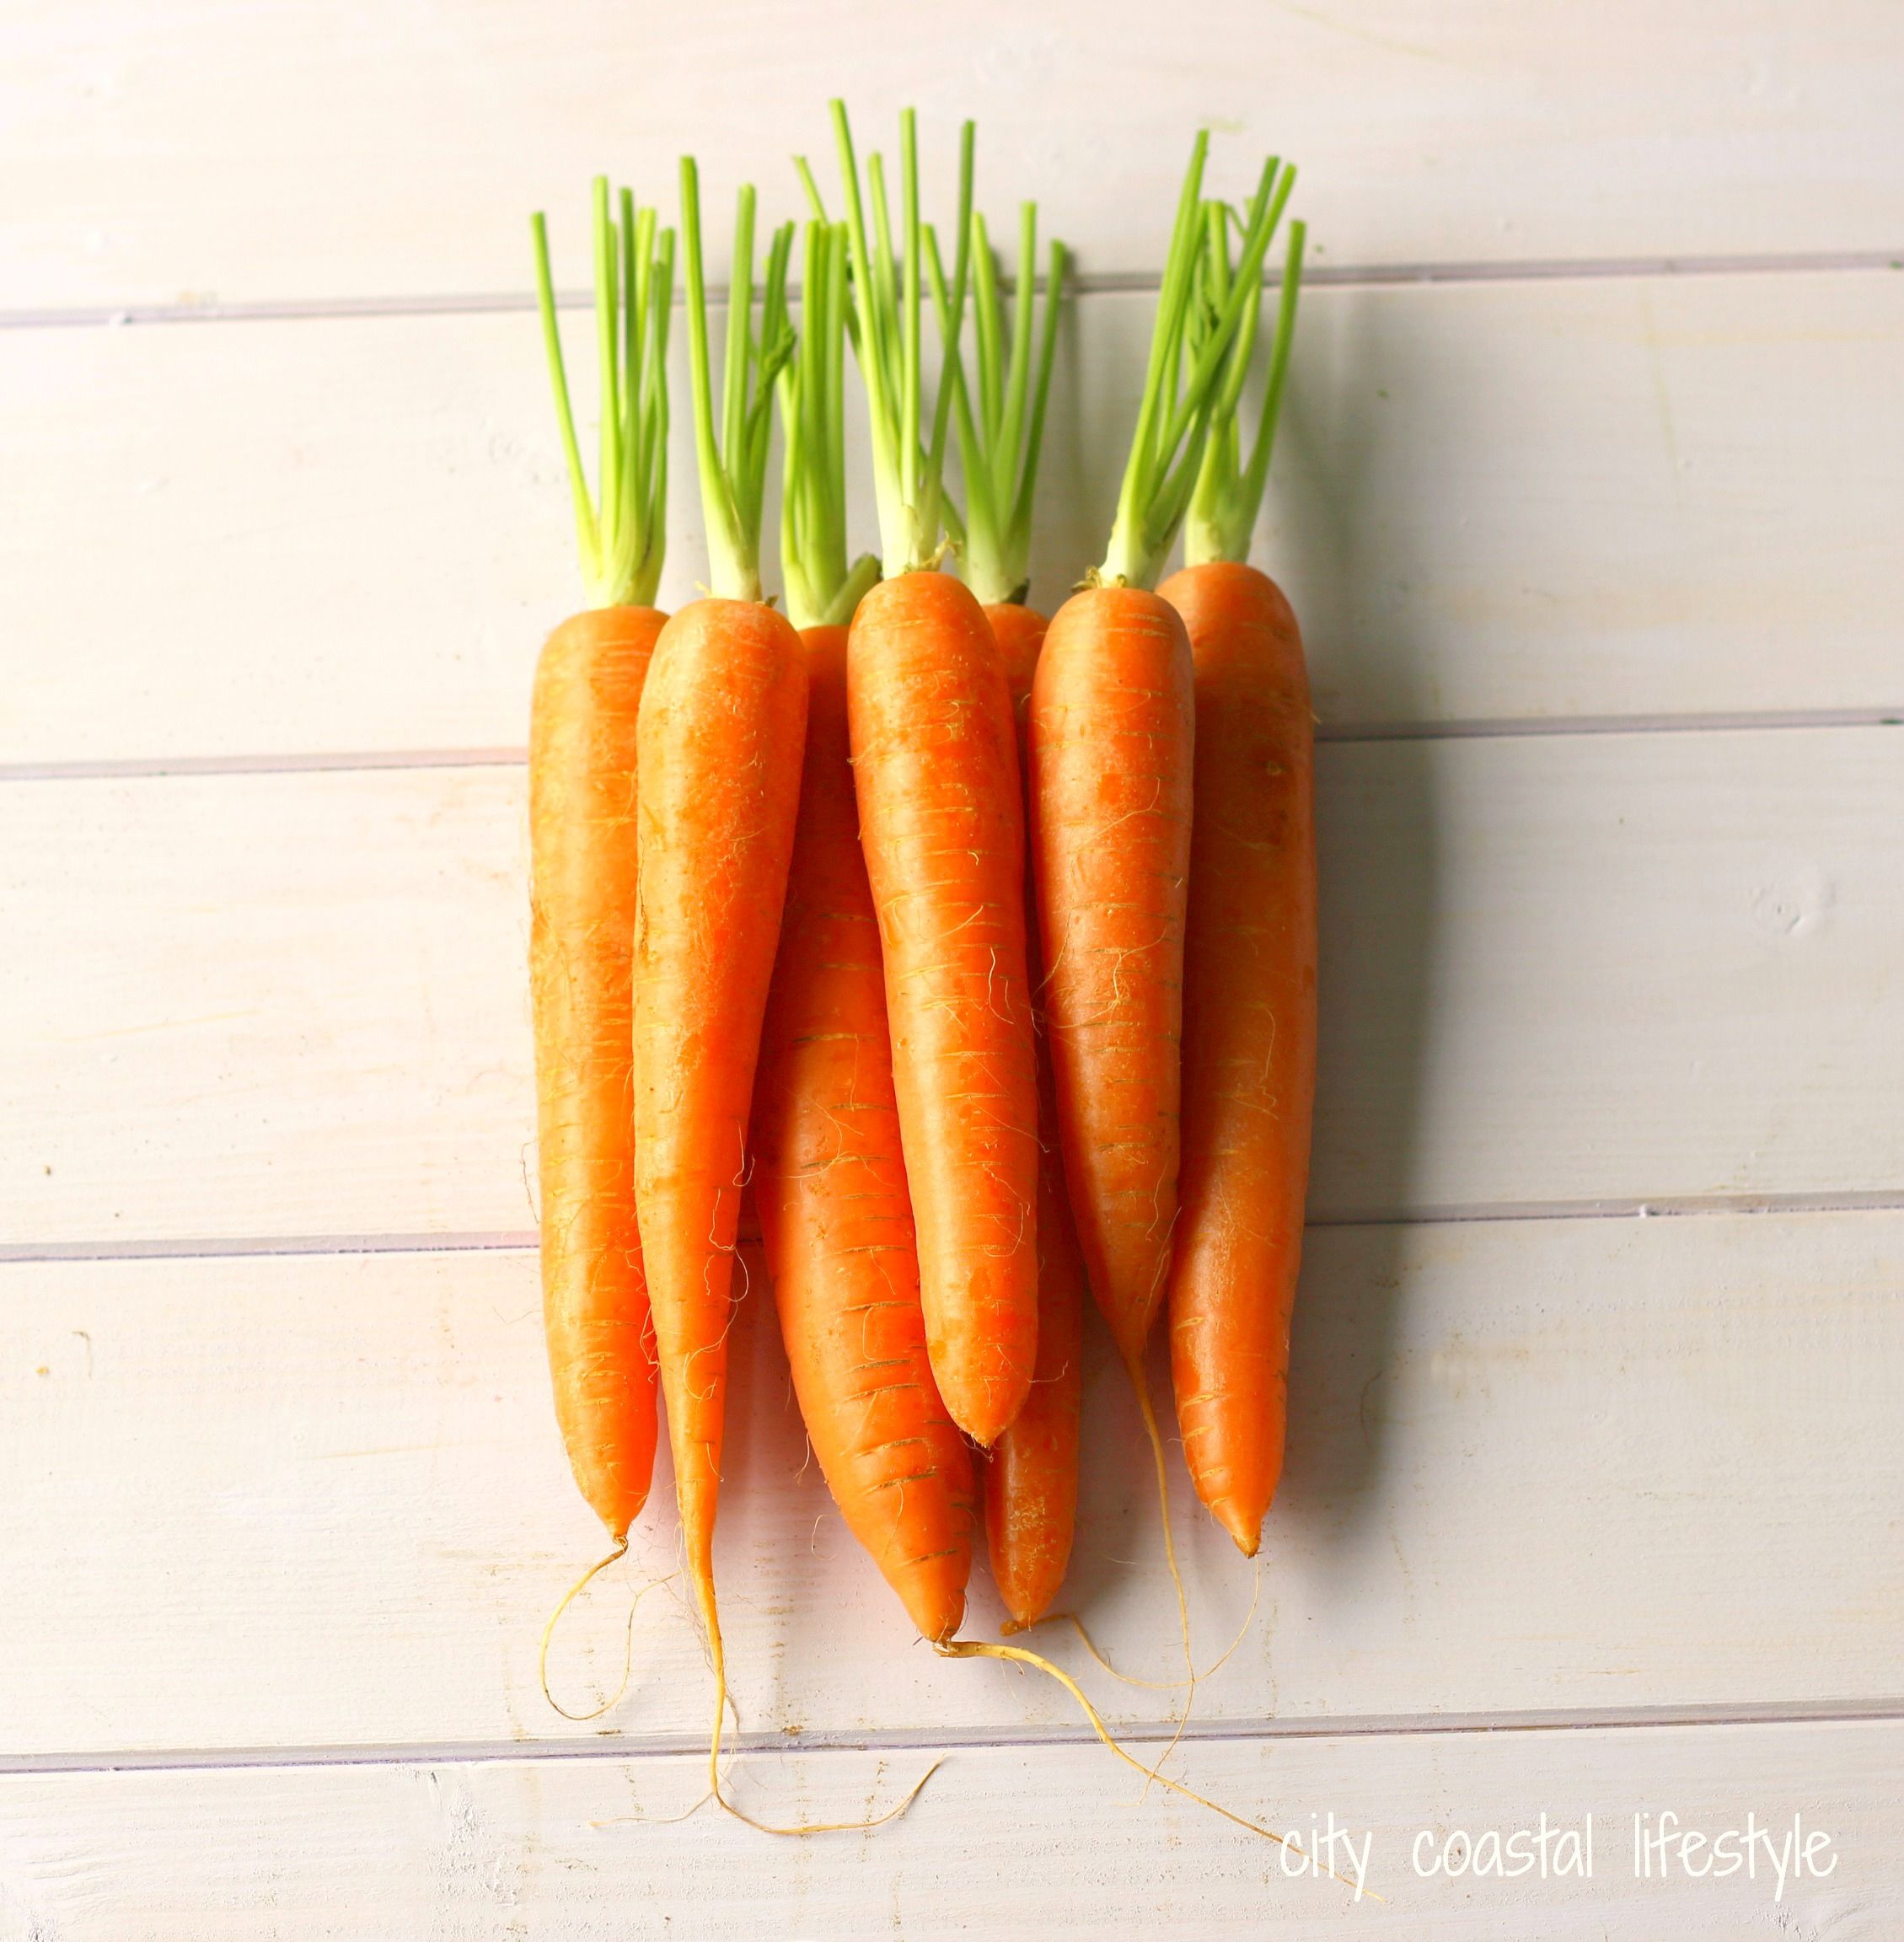 Carrots, plain and simple